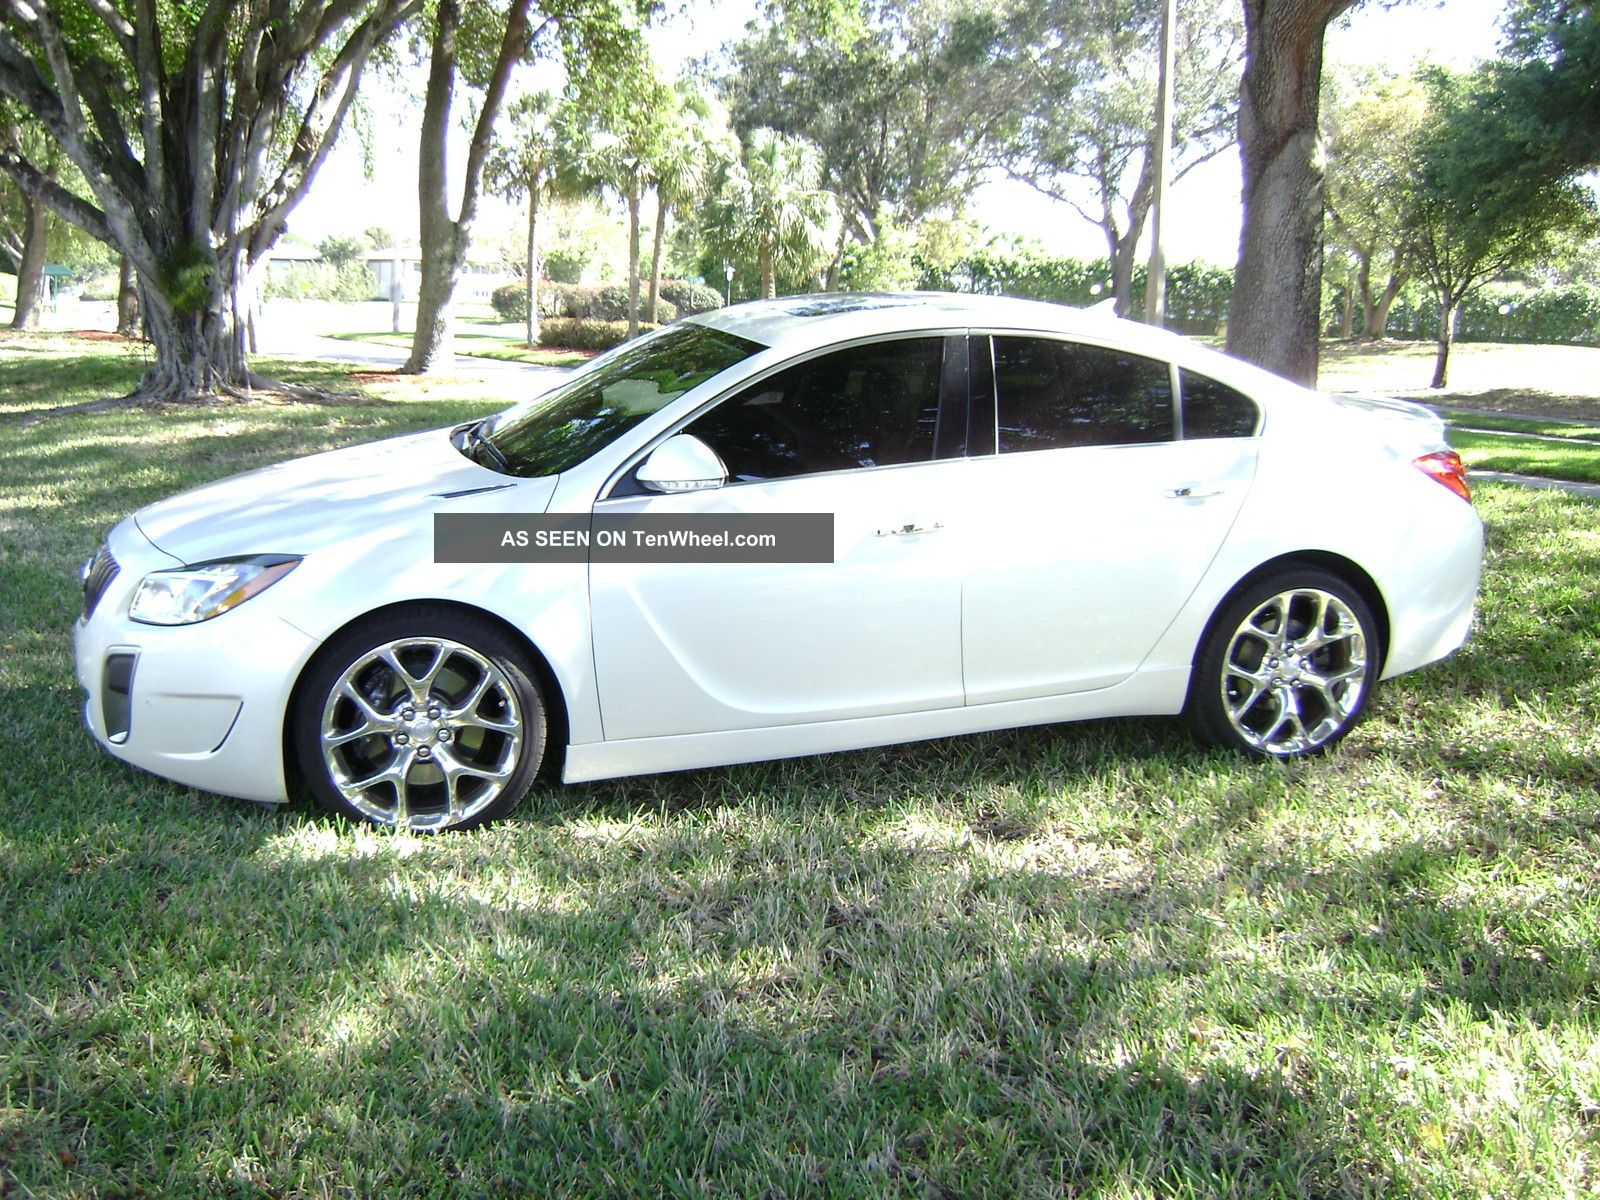 2012 Buick Regal Gs Loaded Premium Stereo Pearl White